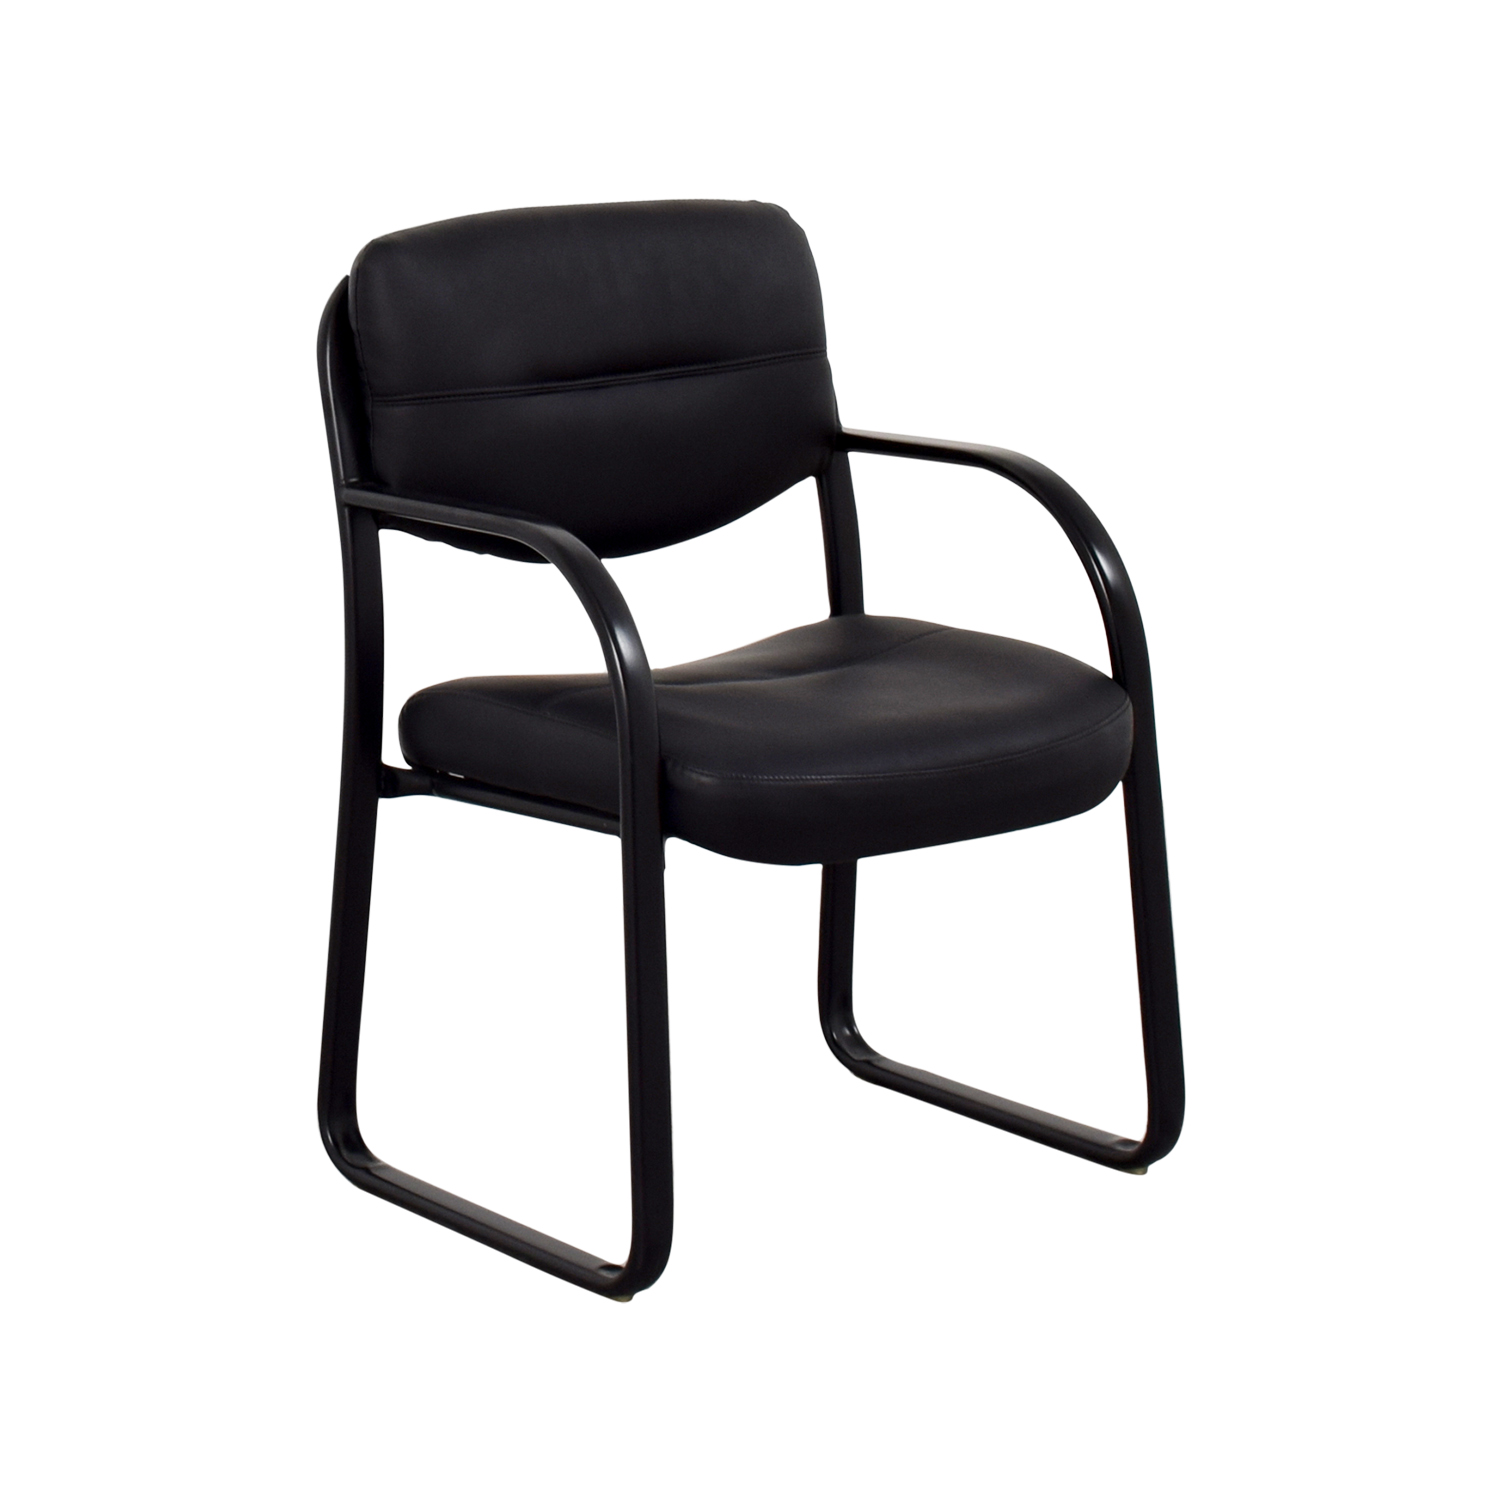 40% OFF Leather Desk Chair Chairs